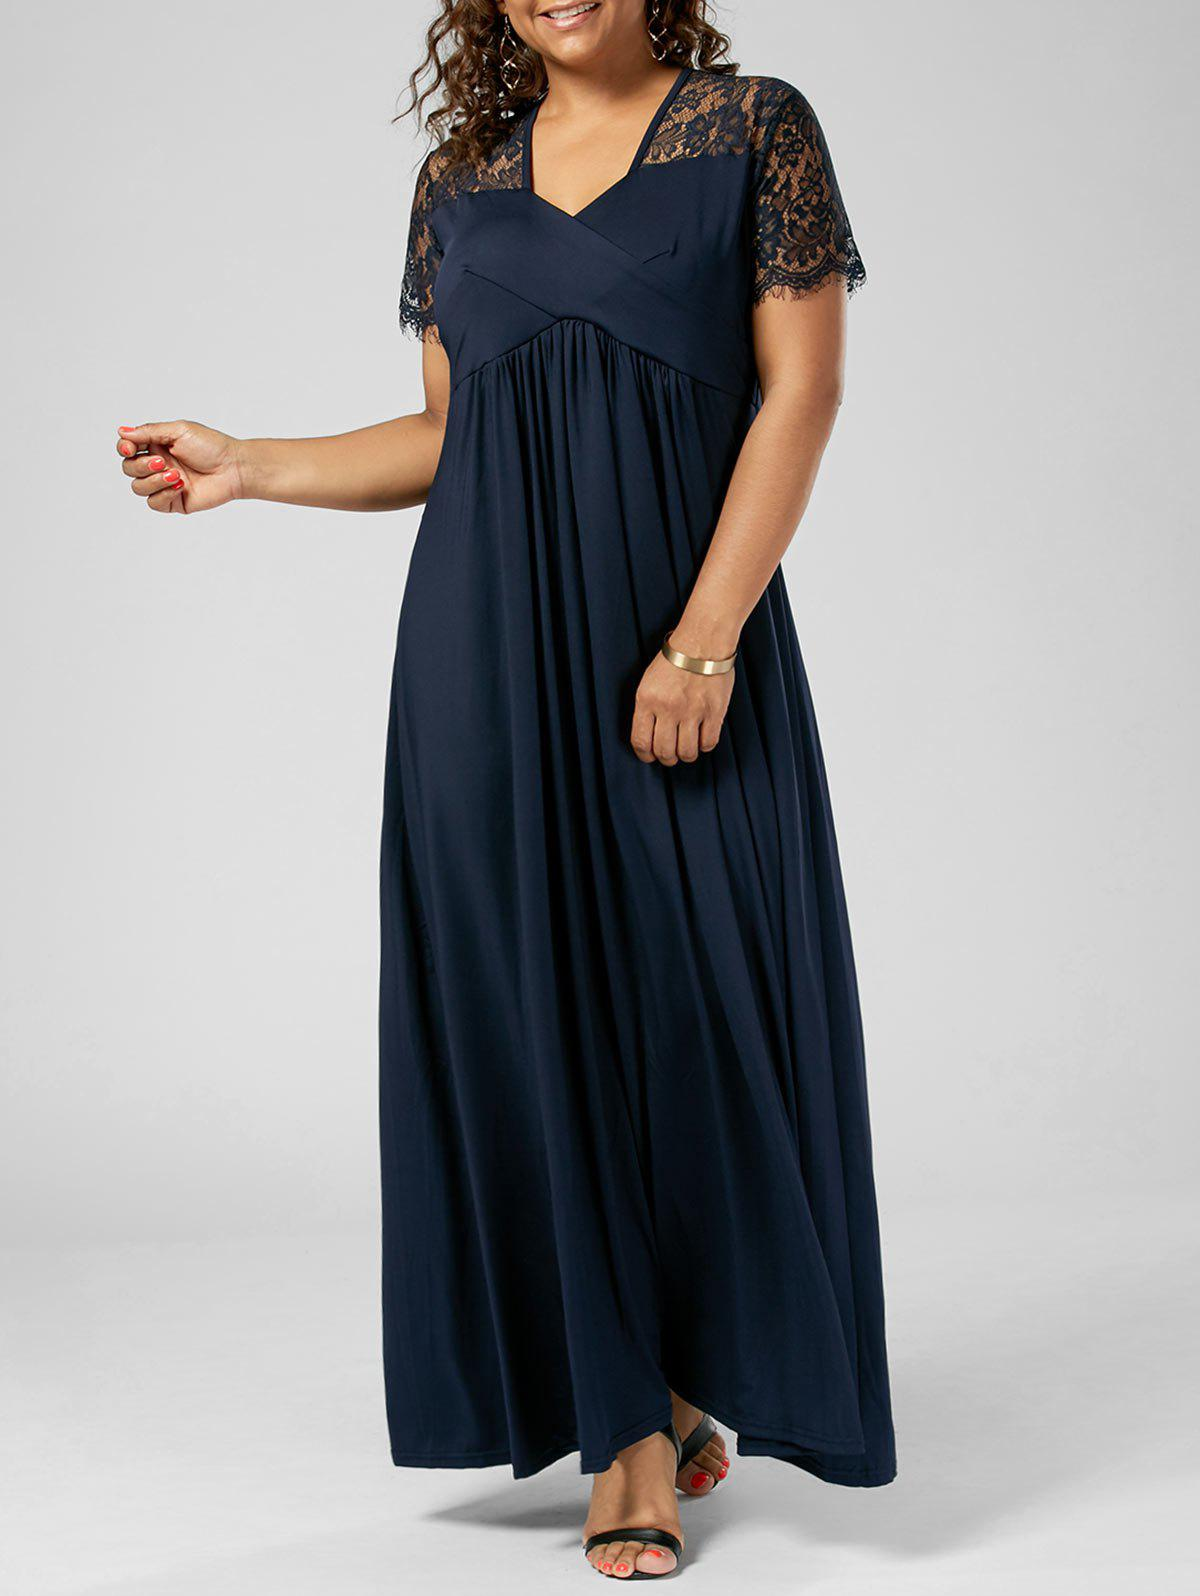 Plus Size Lace Insert Maxi Formal Dress with SleevesWOMEN<br><br>Size: 2XL; Color: PURPLISH BLUE; Style: Brief; Material: Polyester; Silhouette: A-Line; Dresses Length: Floor-Length; Neckline: V-Neck; Sleeve Length: Short Sleeves; Pattern Type: Solid Color; With Belt: No; Season: Summer; Weight: 0.6000kg; Package Contents: 1 x Dress;